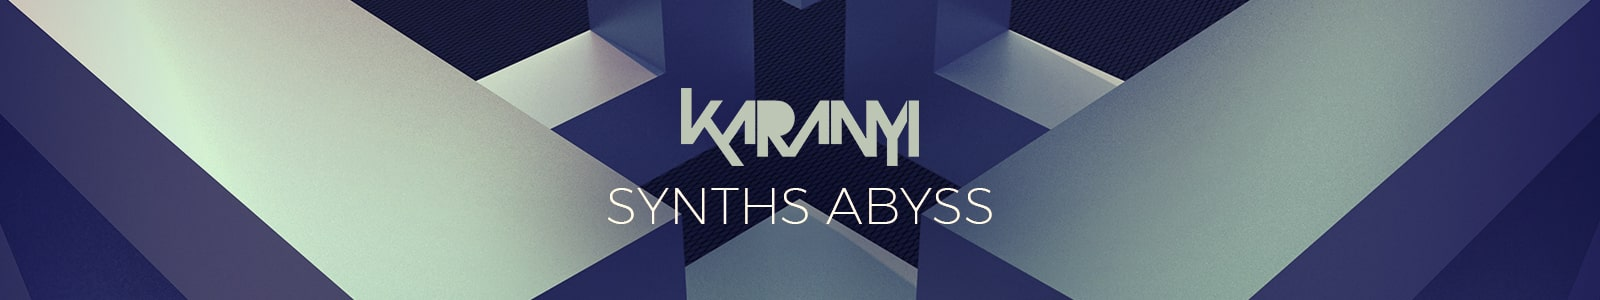 synths abyss